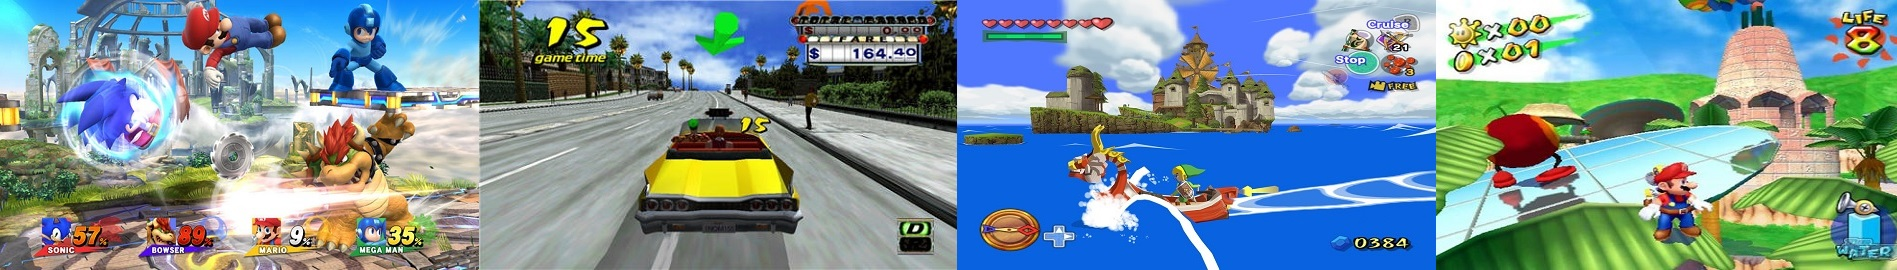 SSBWiiU - Crazy Taxi - The Wind Waker - Super Mario Sunshine